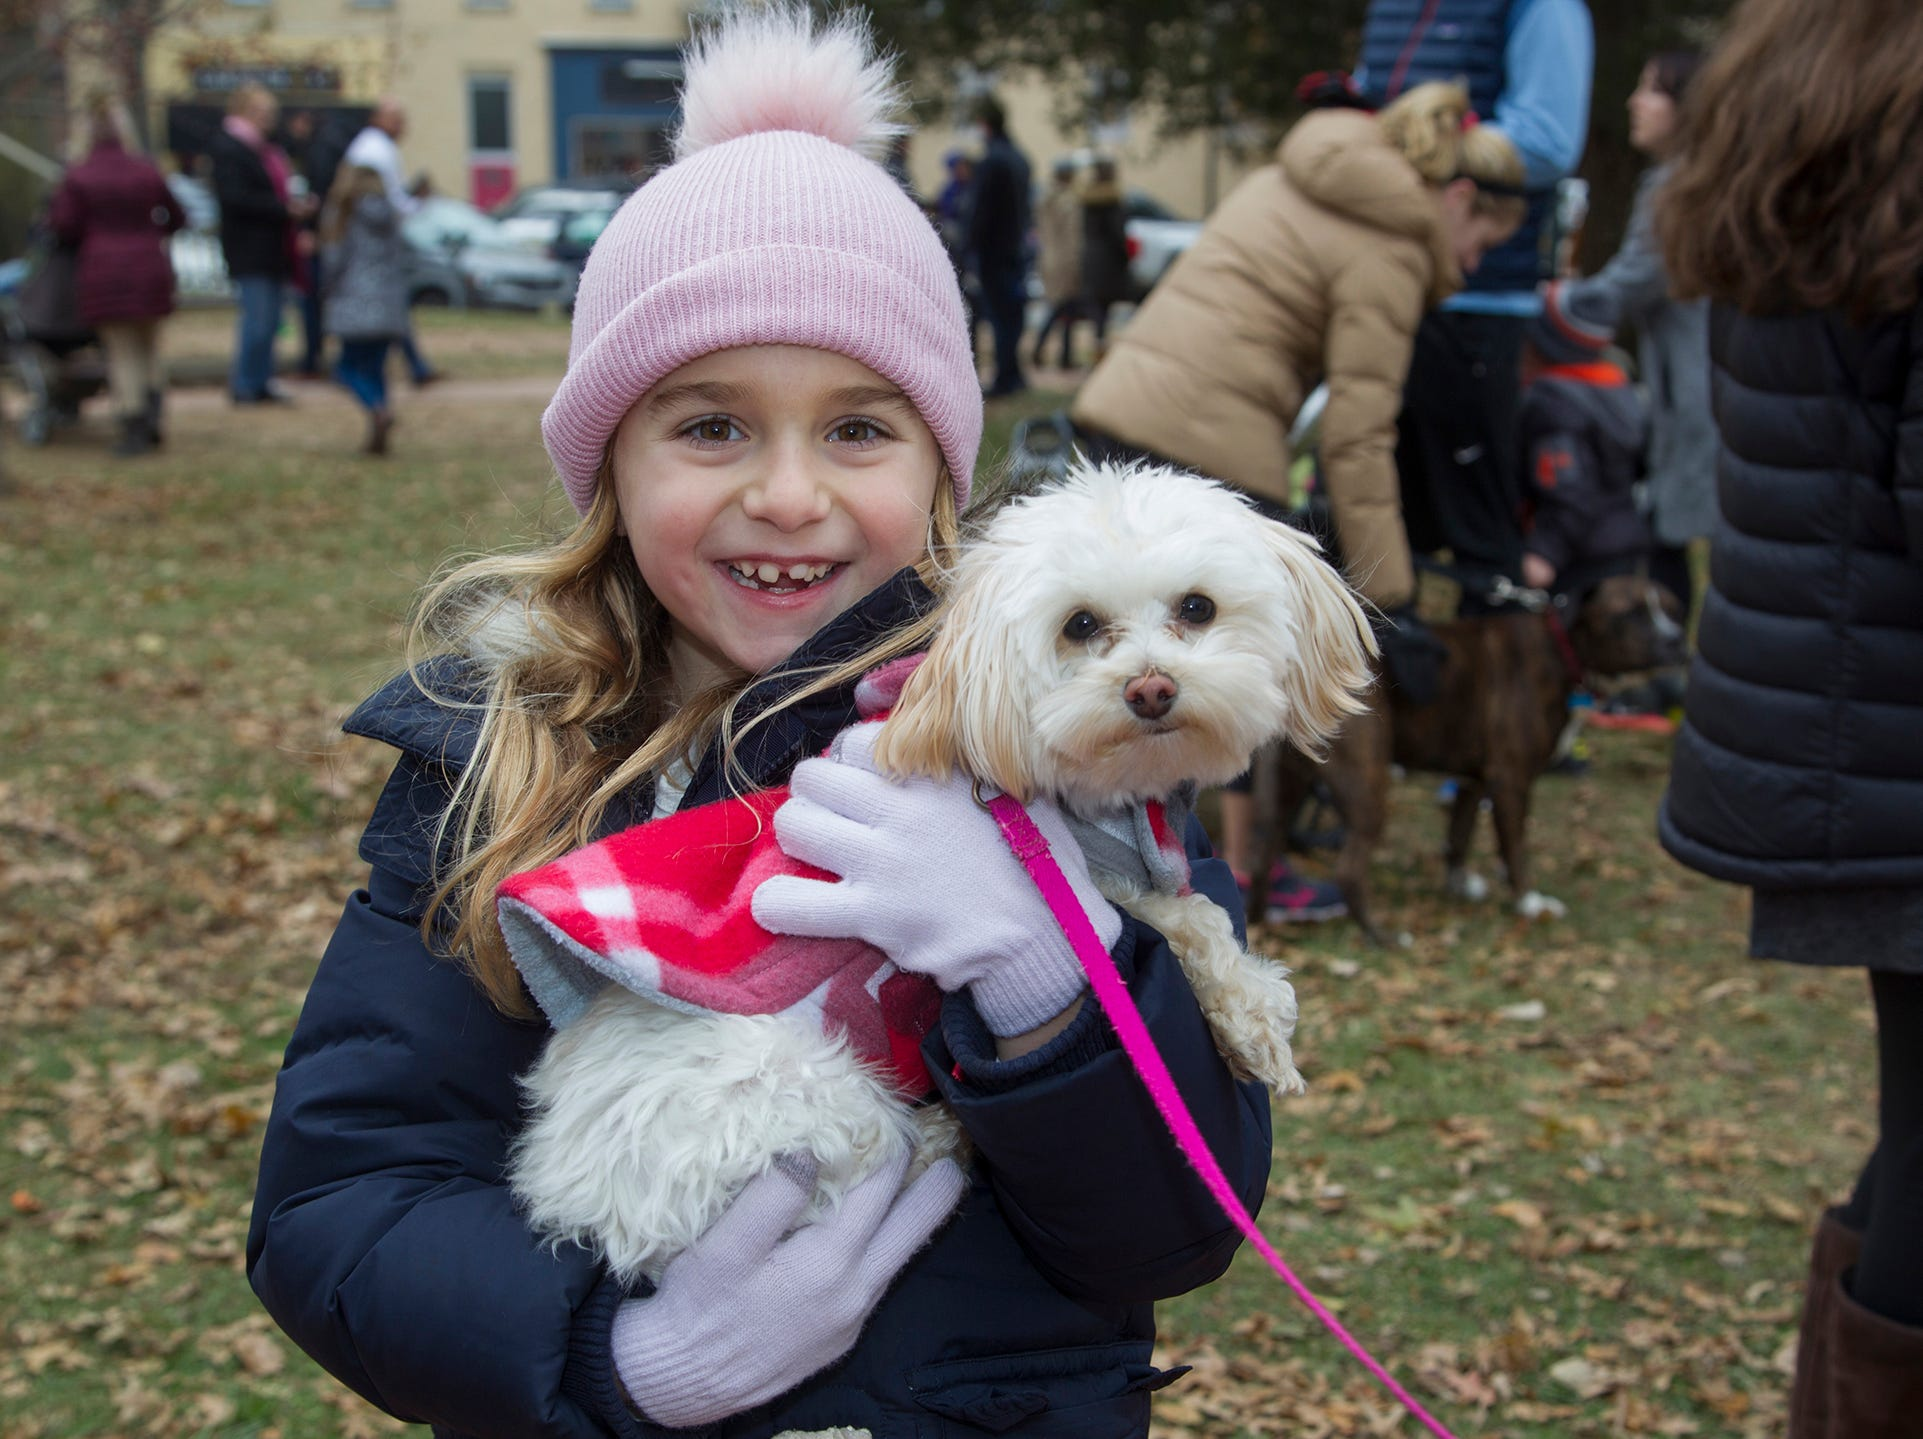 Chloe and Pipper. The Ridgewood Guild sponsors Winter Fest at Van Neste Park in Ridgewood. 11/24/2018